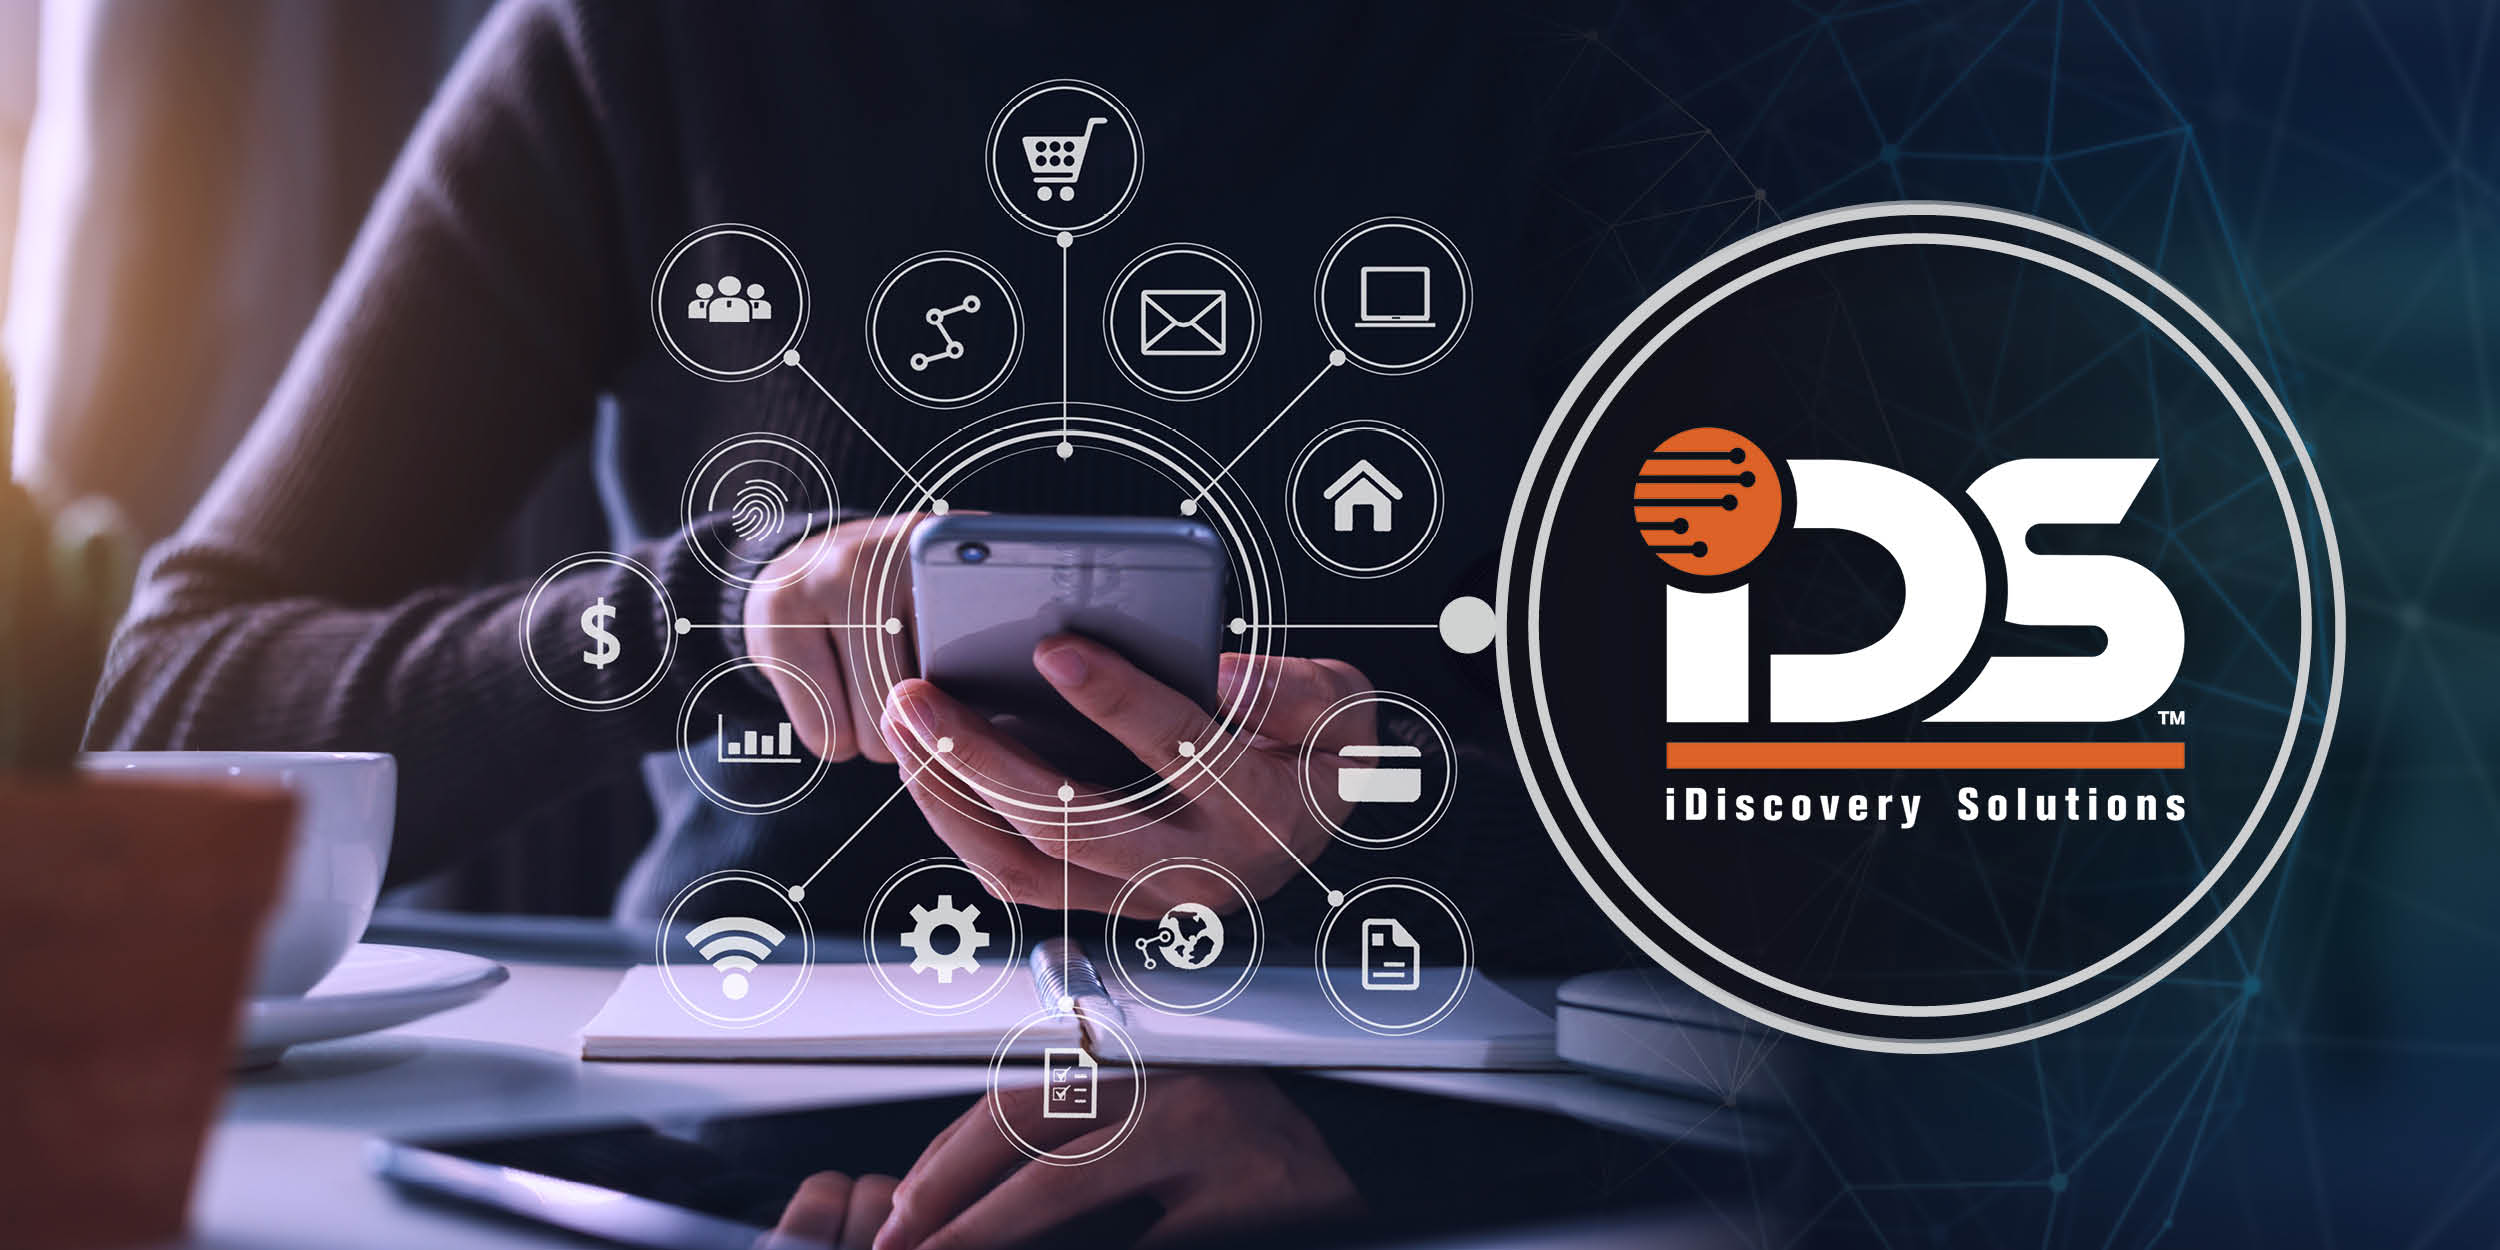 Data Footprint, eDiscovery, Discovery Services, iDiscovery, Discovery, iDS, Digital Forensic Expert, Mobile Device Data, Mobile Device, mobile data sources, mobile device data trails, Data Sources